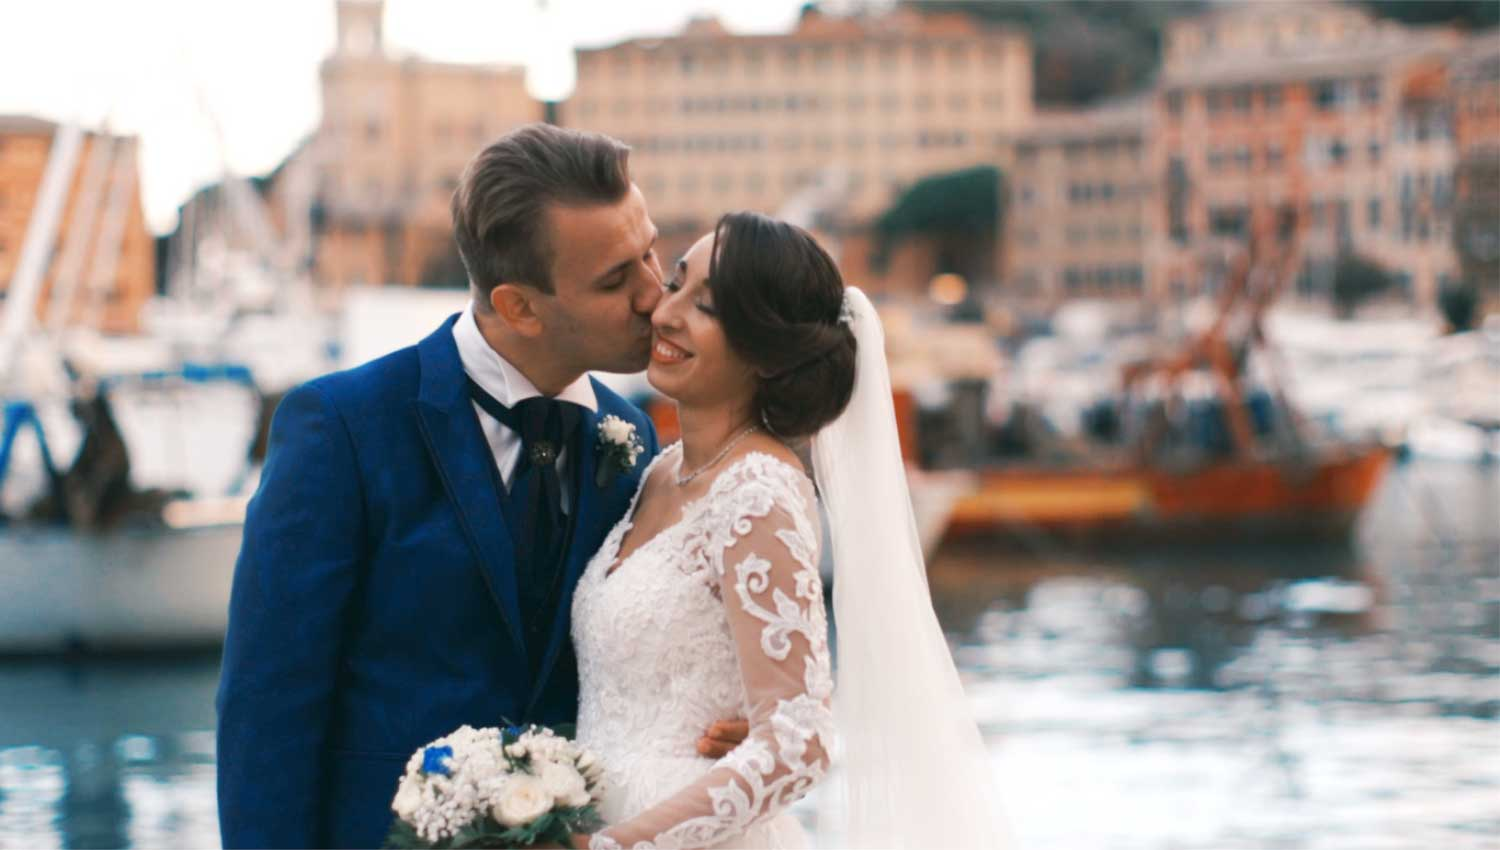 Wedding in Santa Margherita Ligure, Italy, video by White & Movie